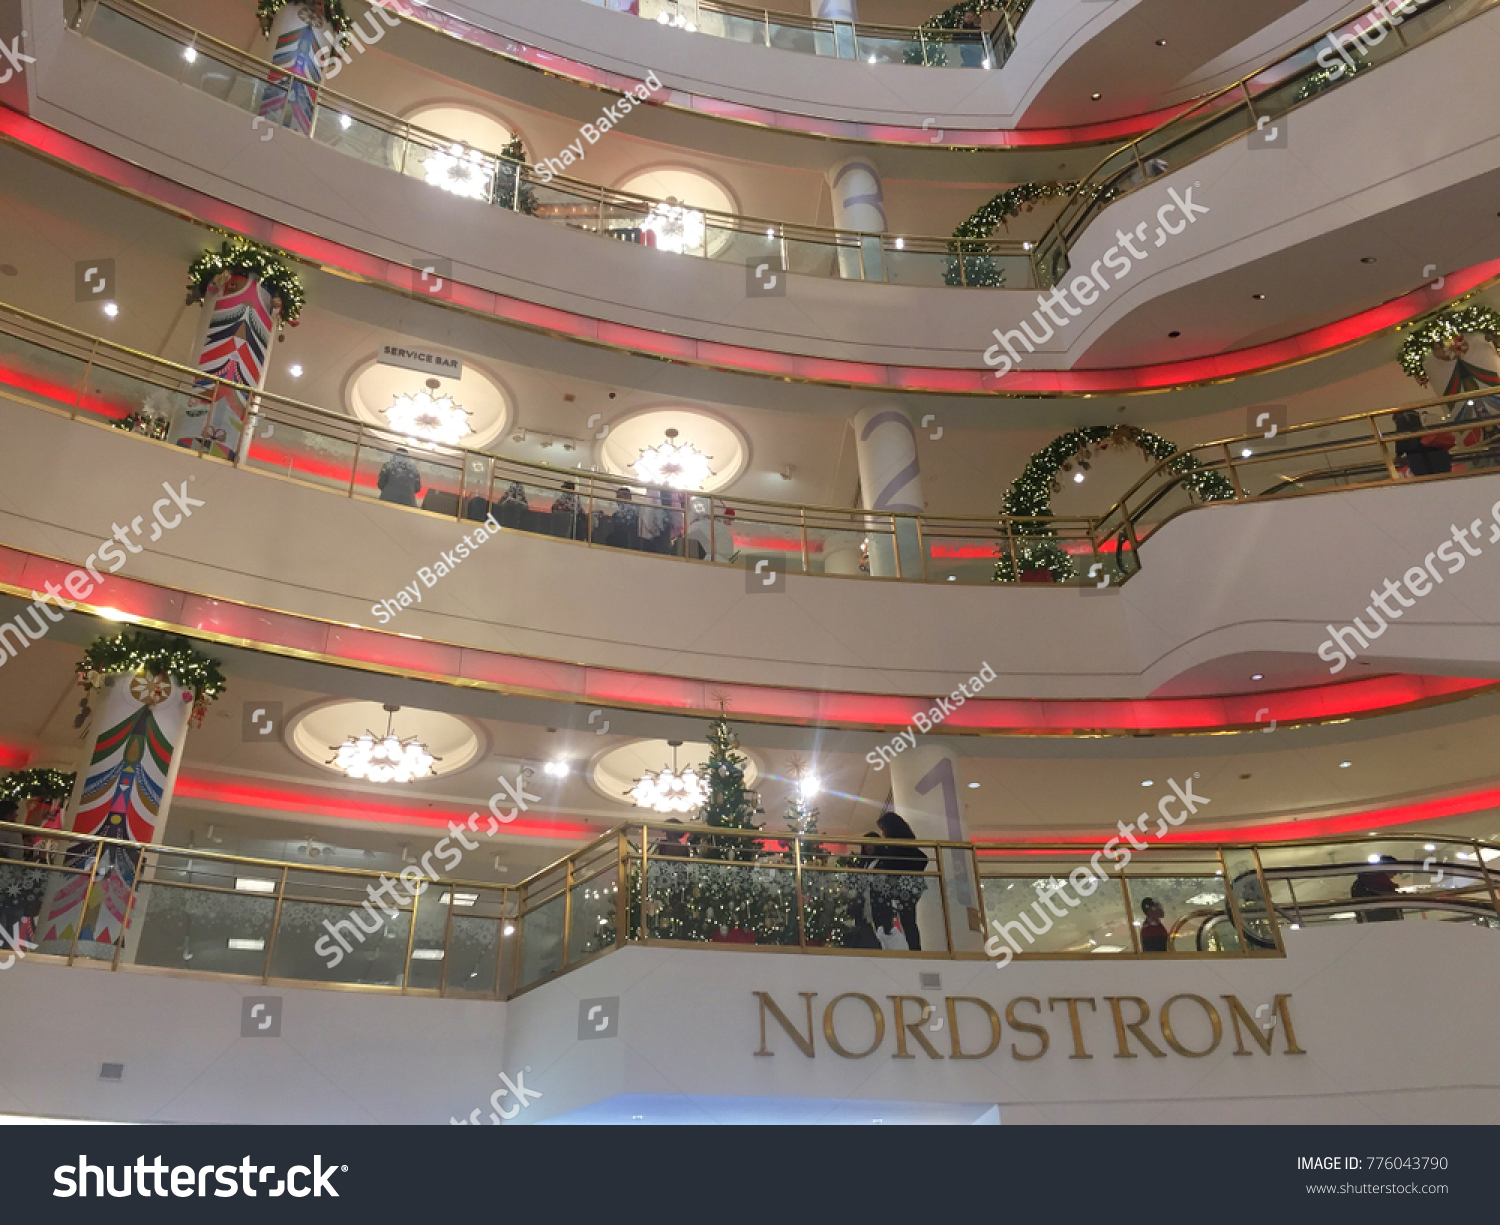 san francisco ca december 15 2017 the christmas decorations and sign inside - Nordstrom Christmas Decorations